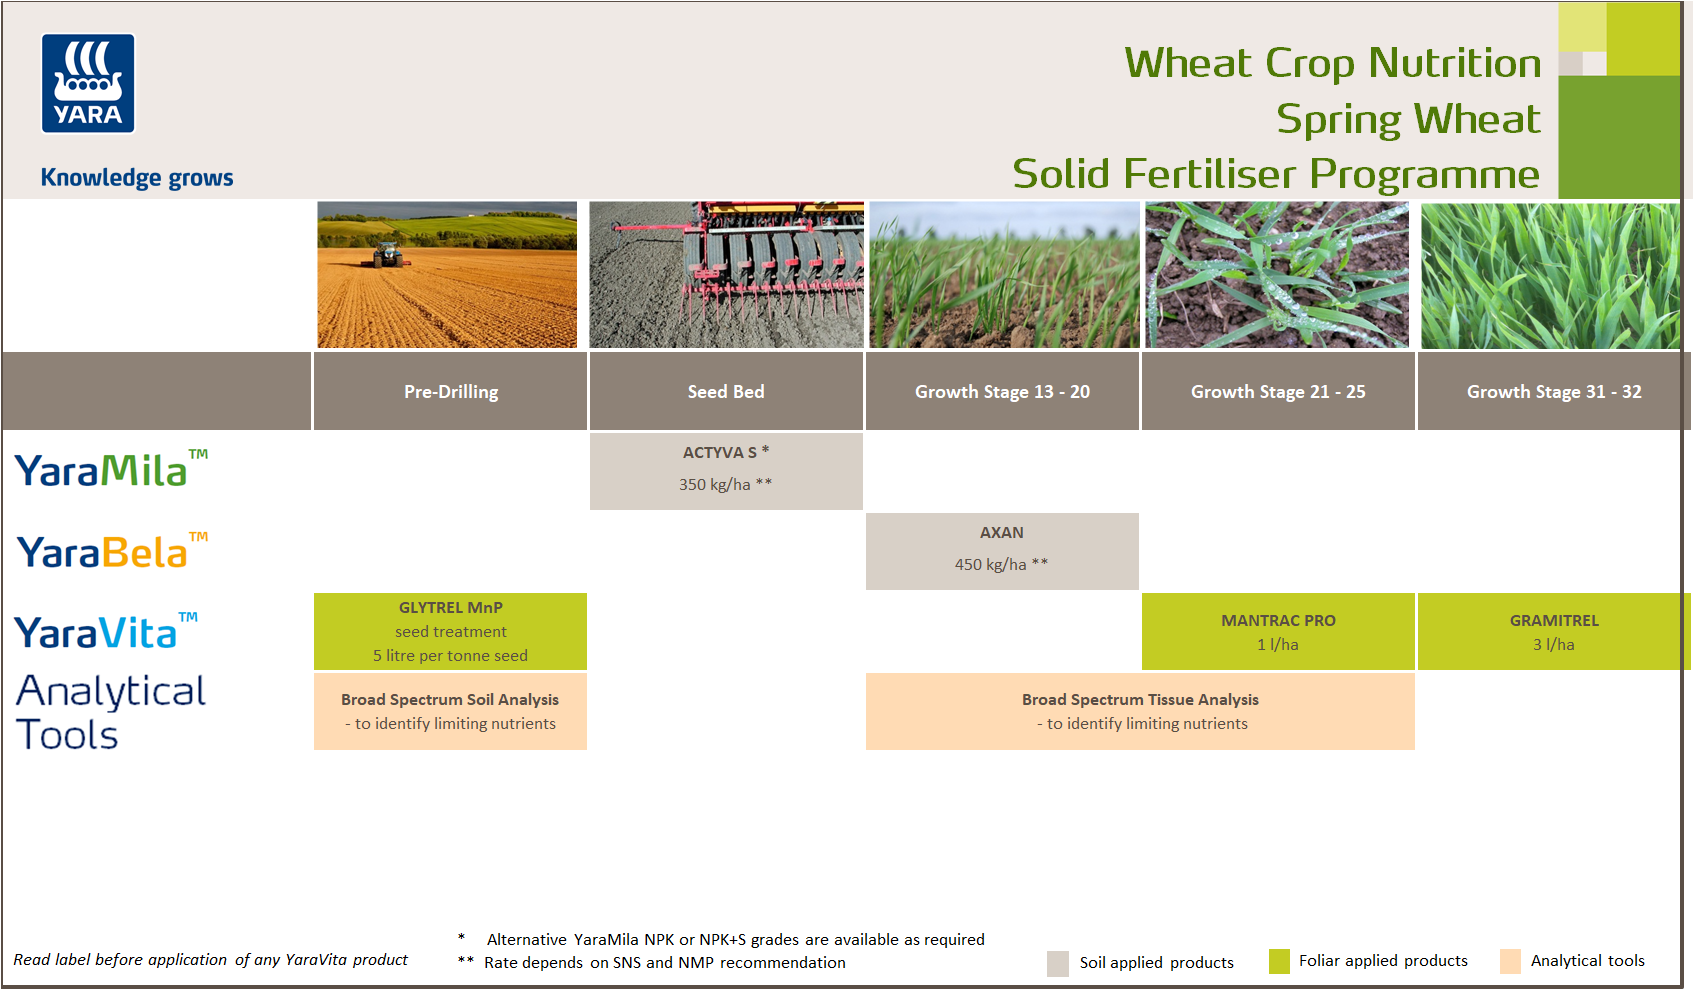 Spring wheat fertiliser programme